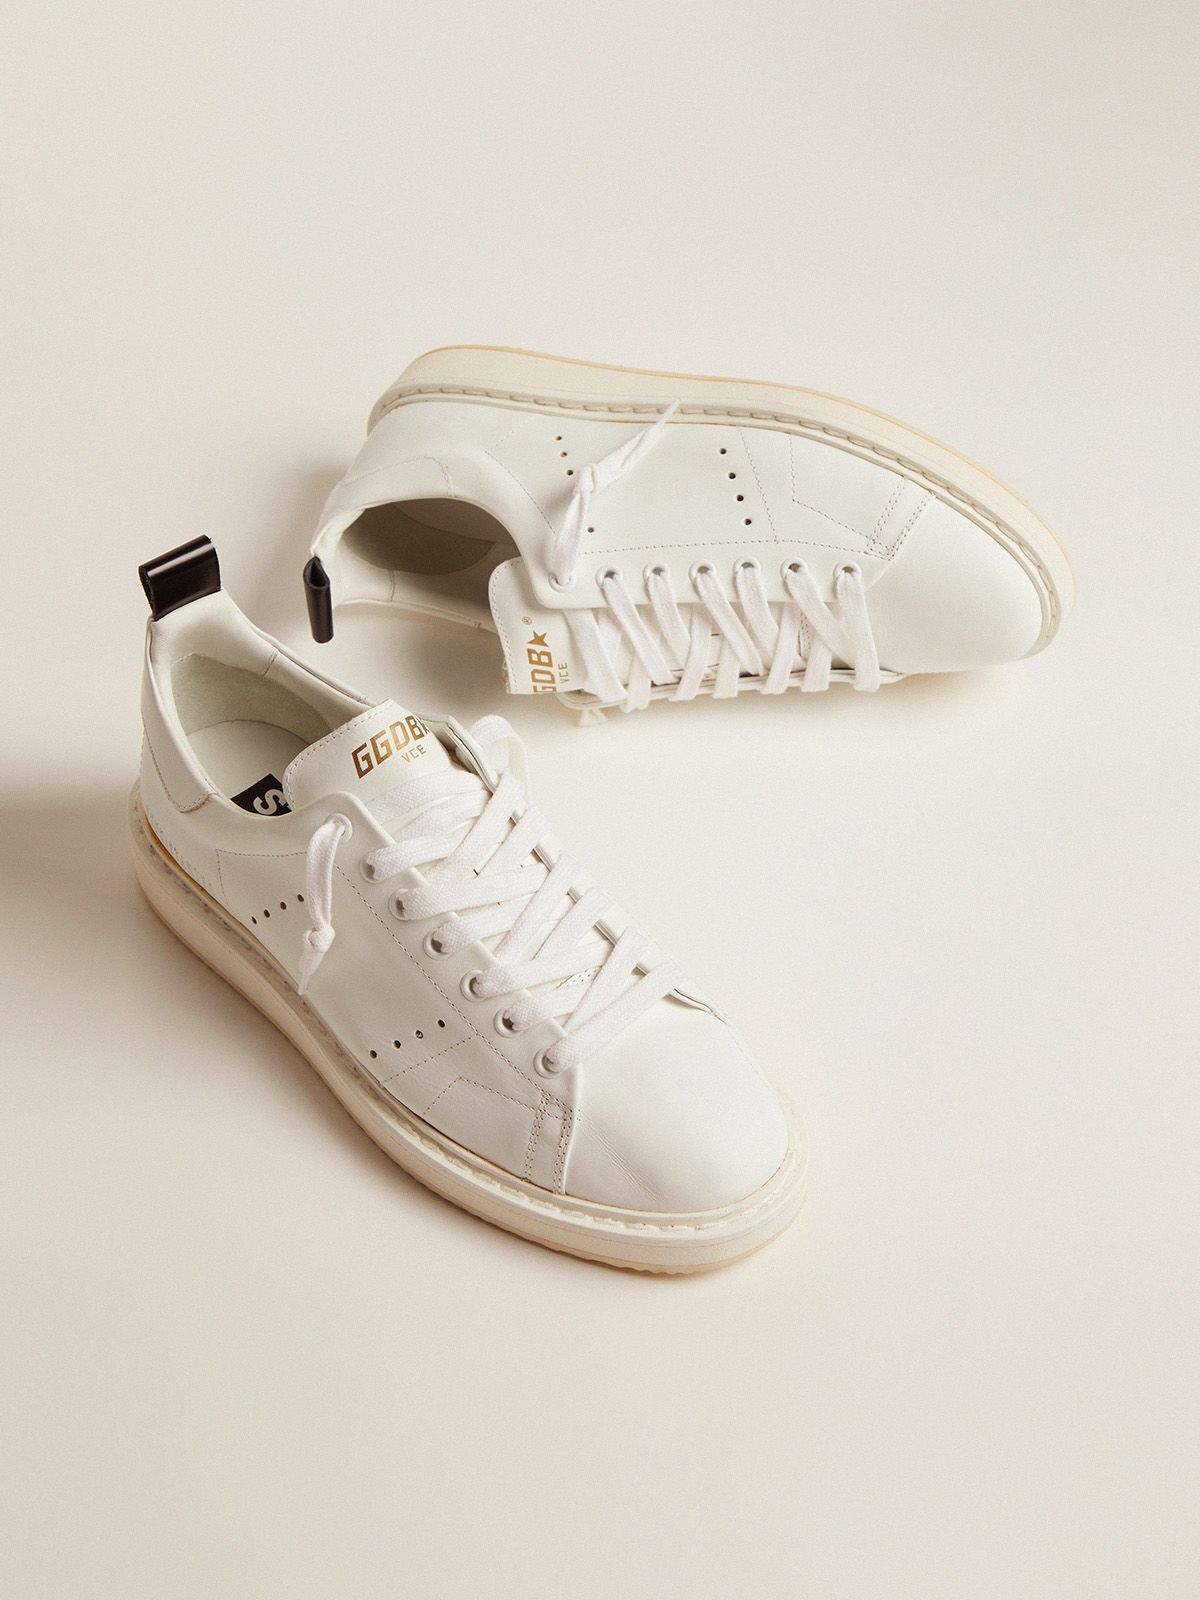 Golden Goose - Starter sneakers in leather with printed star on the heel tab in